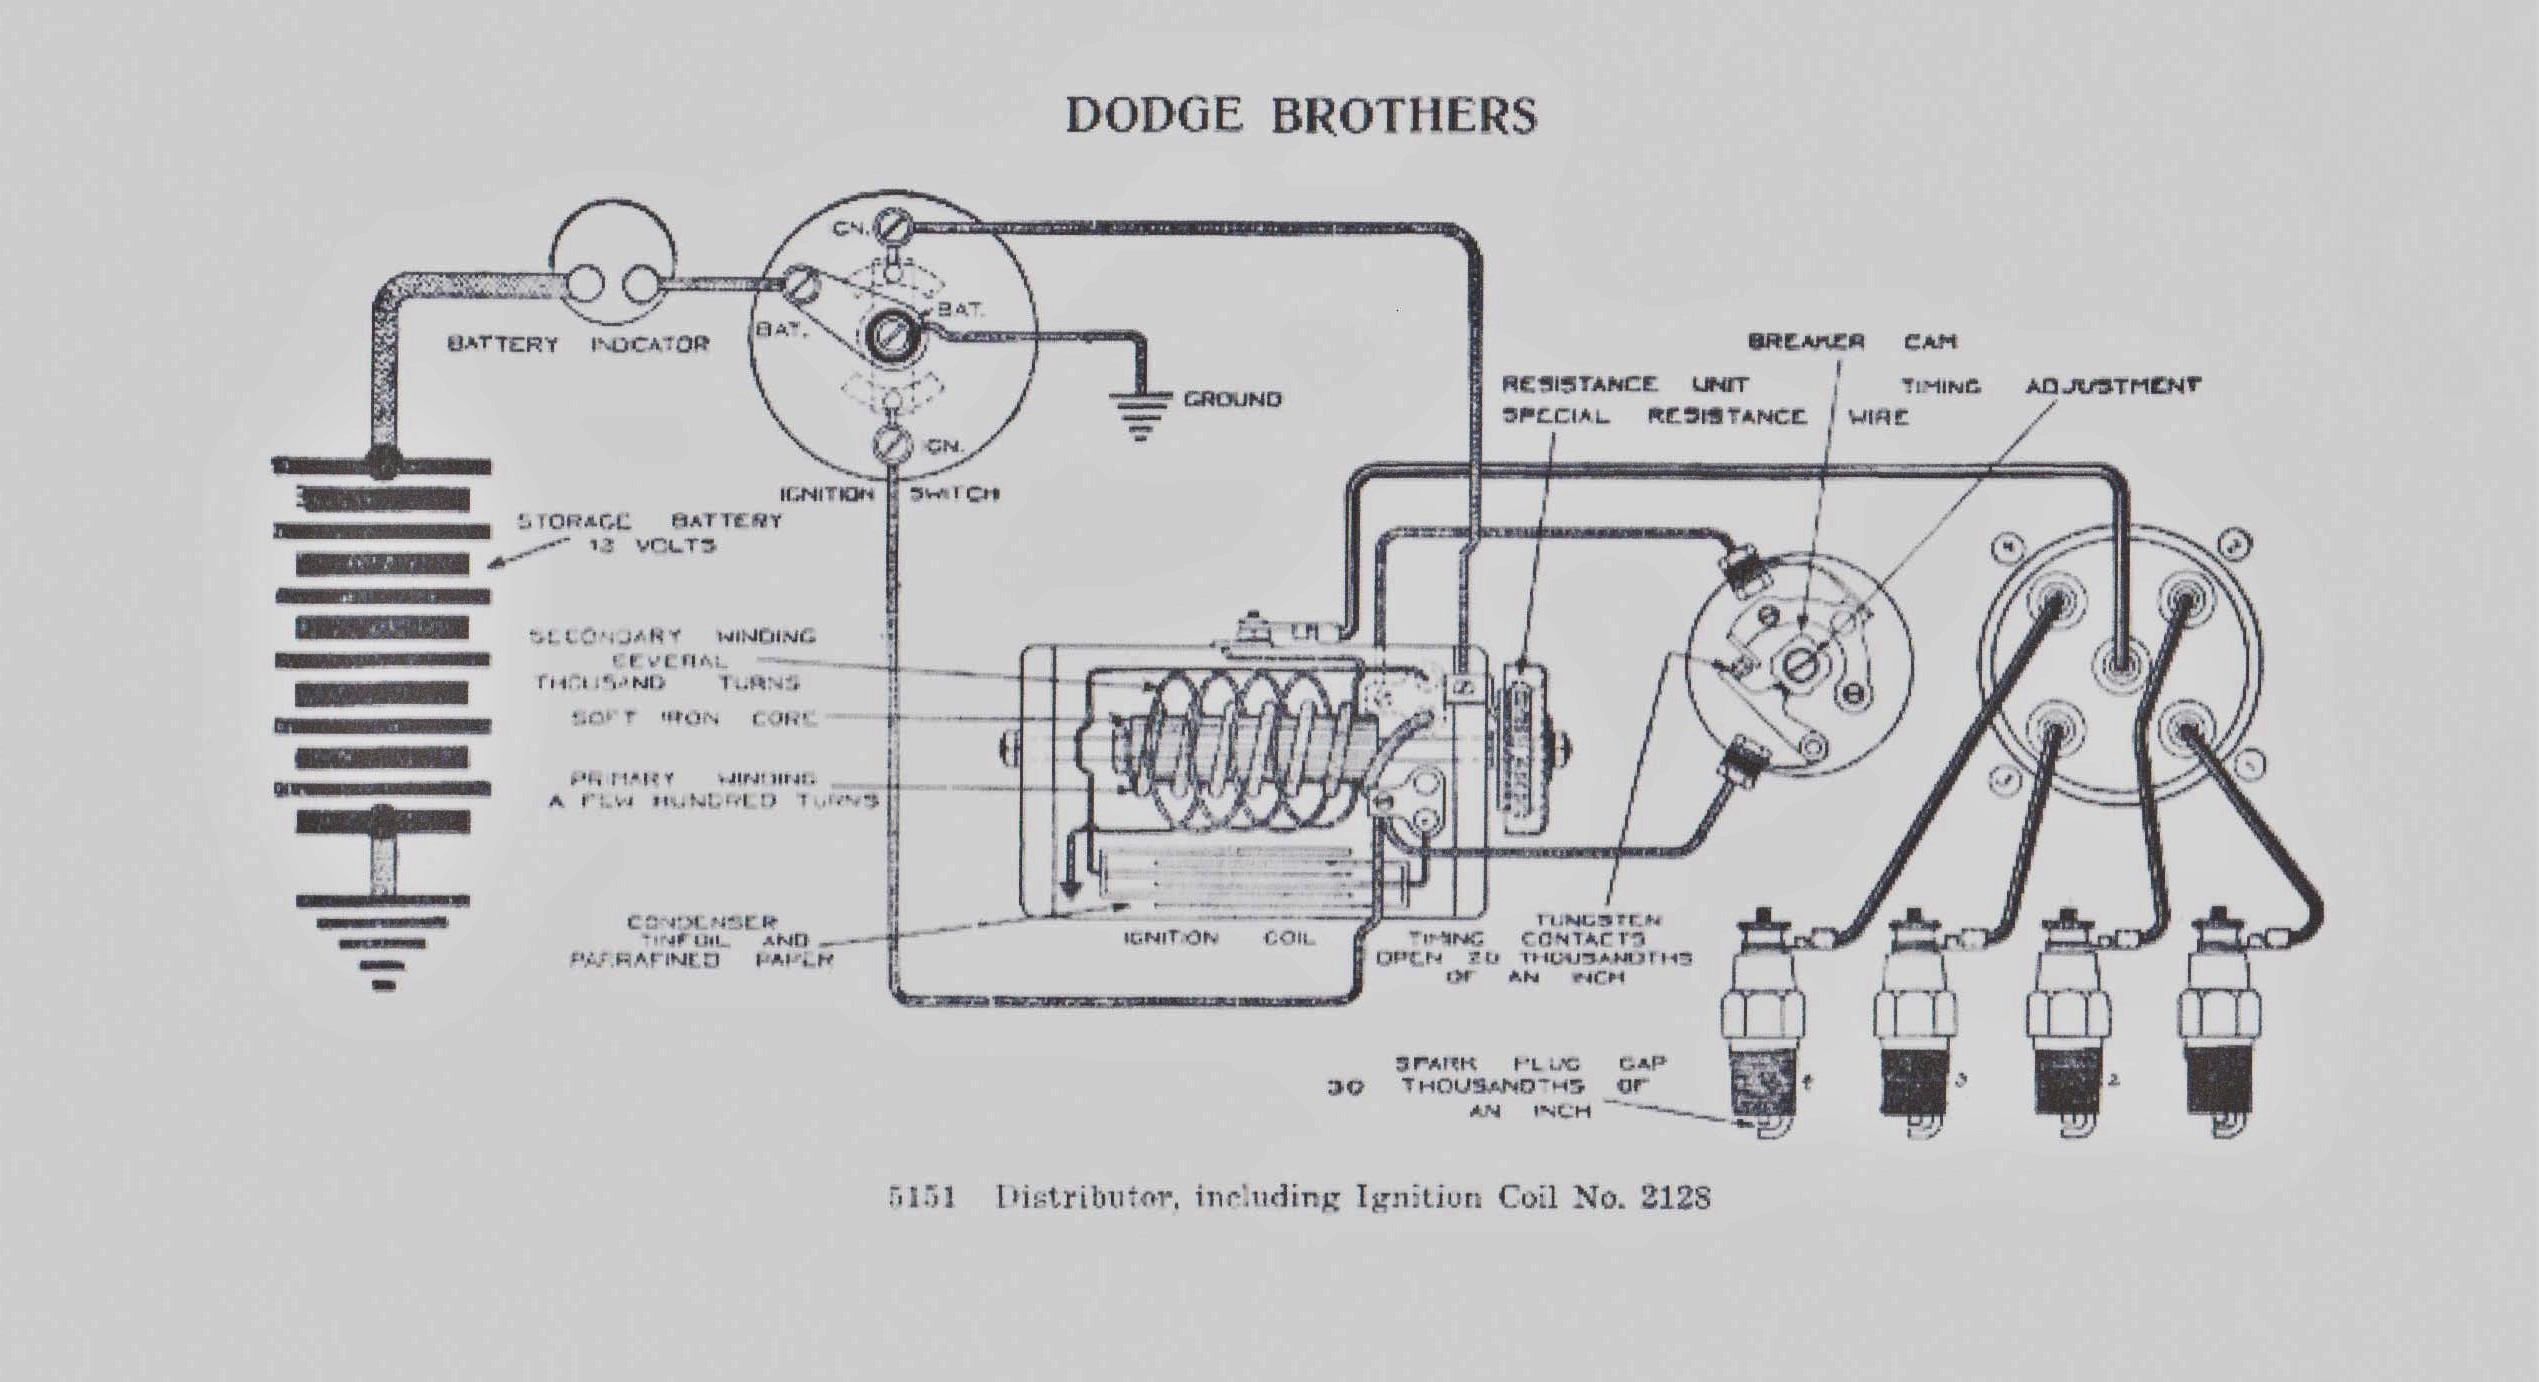 1917 Dodge Delco Distributor Wiring 001 - Copy (2).jpg